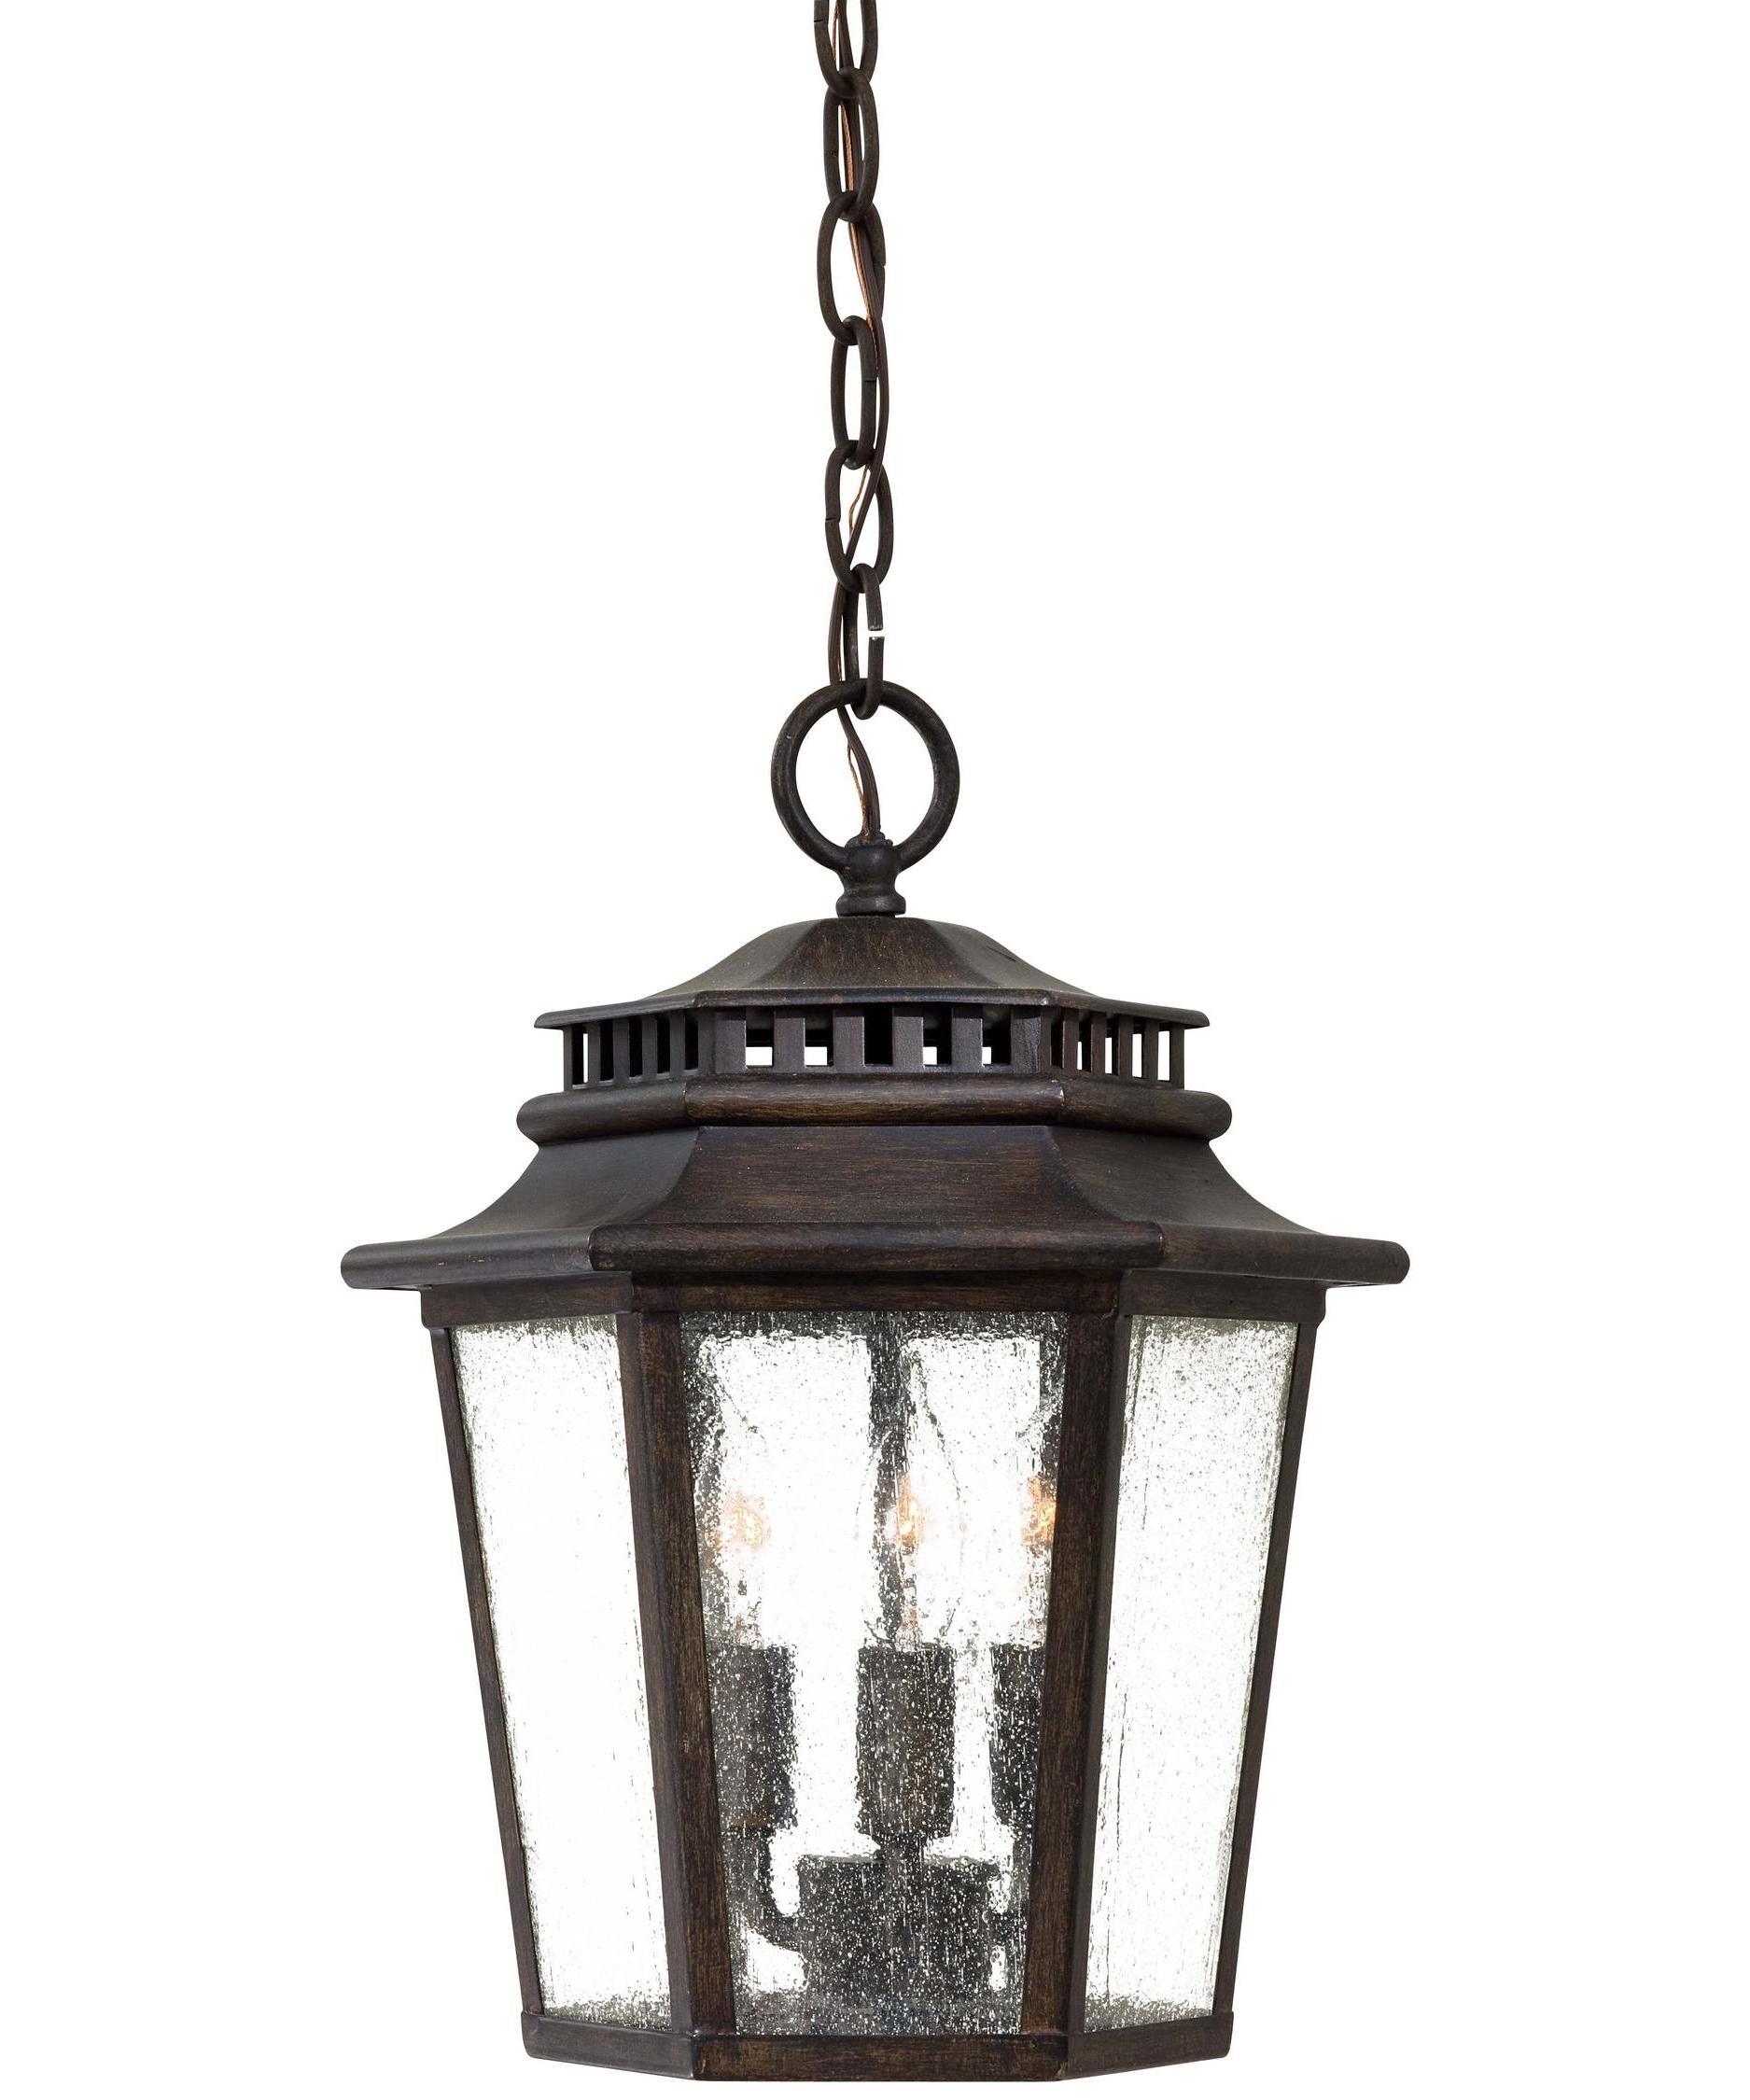 Metal Outdoor Hanging Lights In Most Popular Large Hanging Outdoor Lights – Outdoor Designs (View 2 of 20)